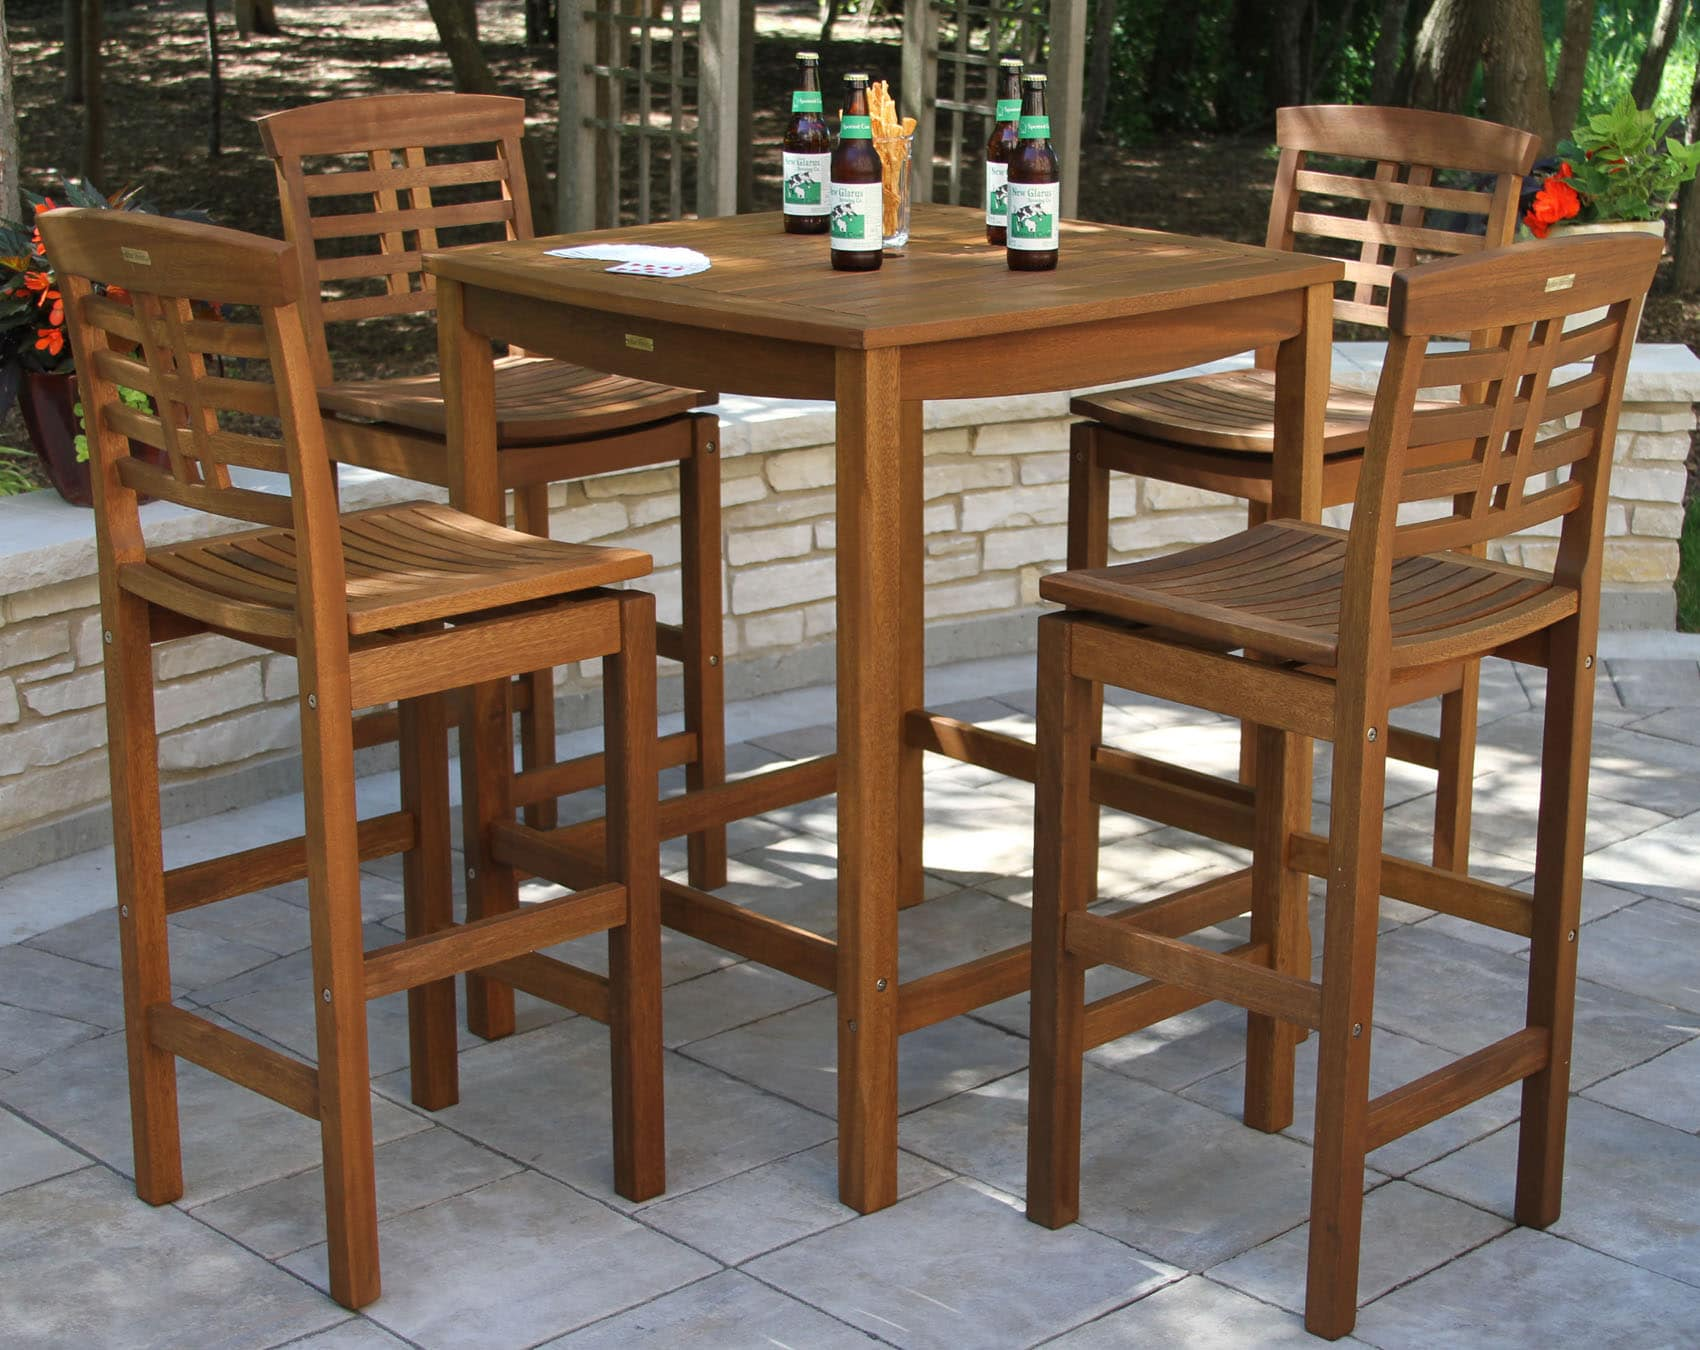 Bar Table With Chairs Eucalyptus Wood Square Bar Height Table In Umber Brown